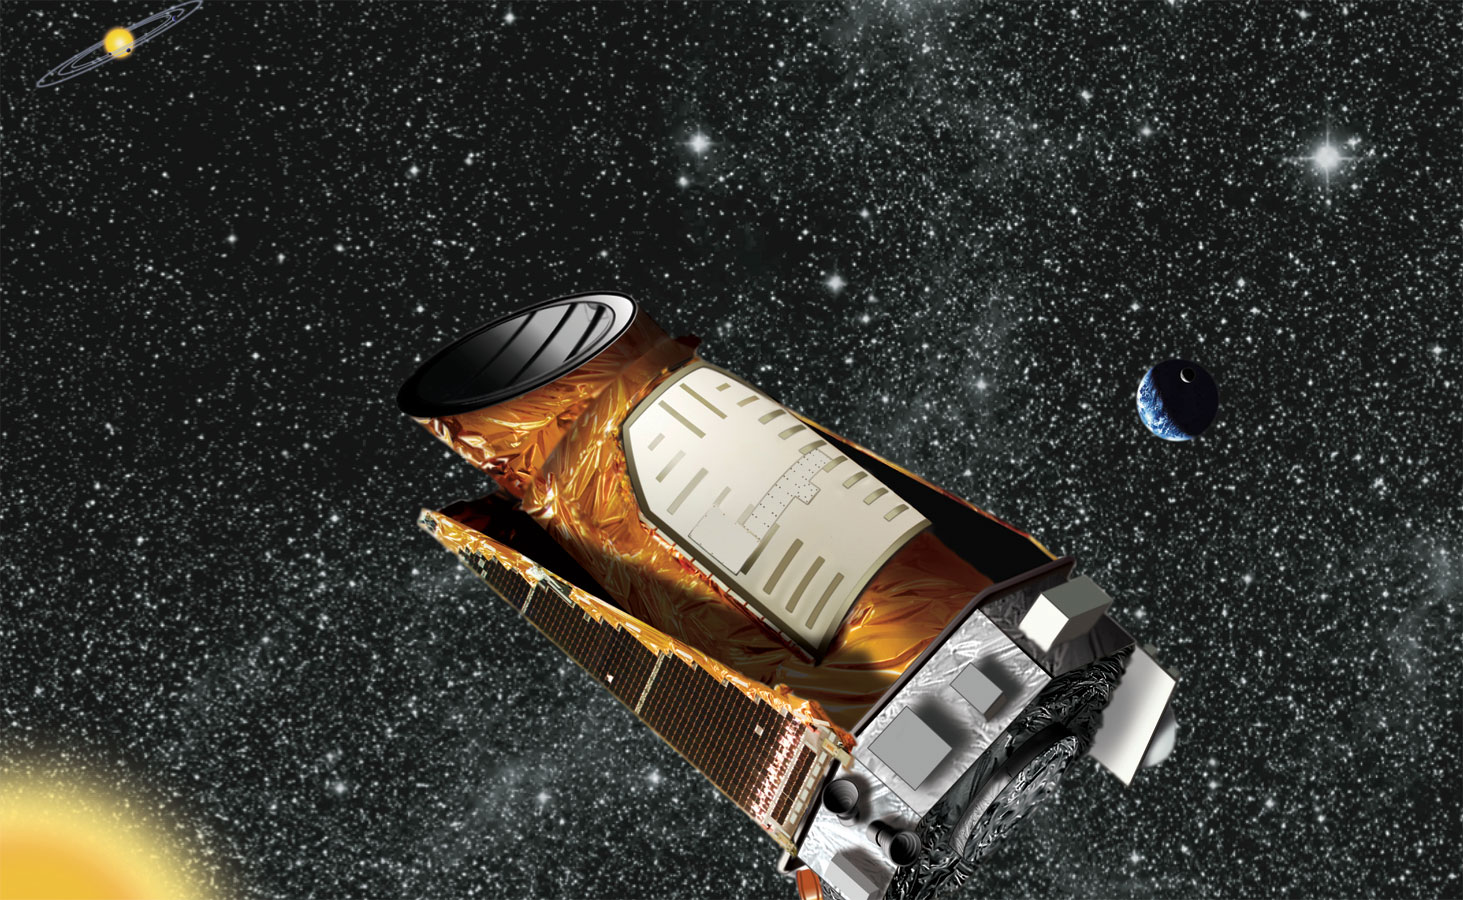 NASA's planet-hunter, the Kepler Space Telescope, Credit: NASA